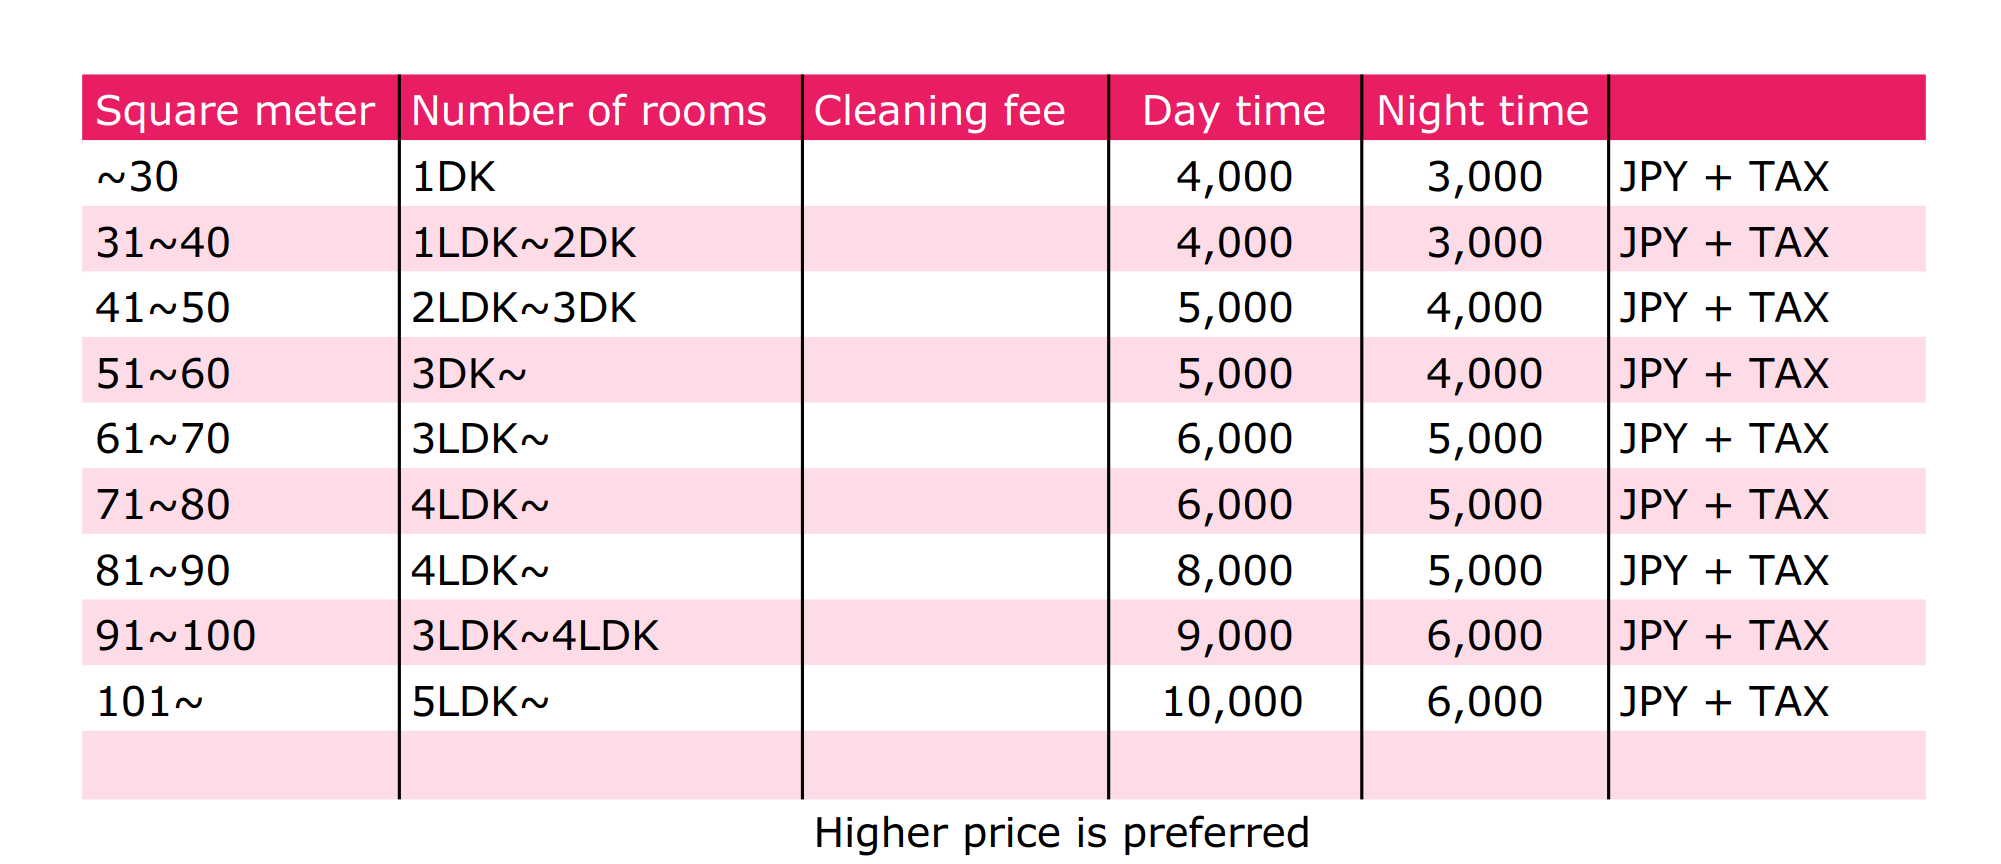 House keeping fee in WAKAYAMA.